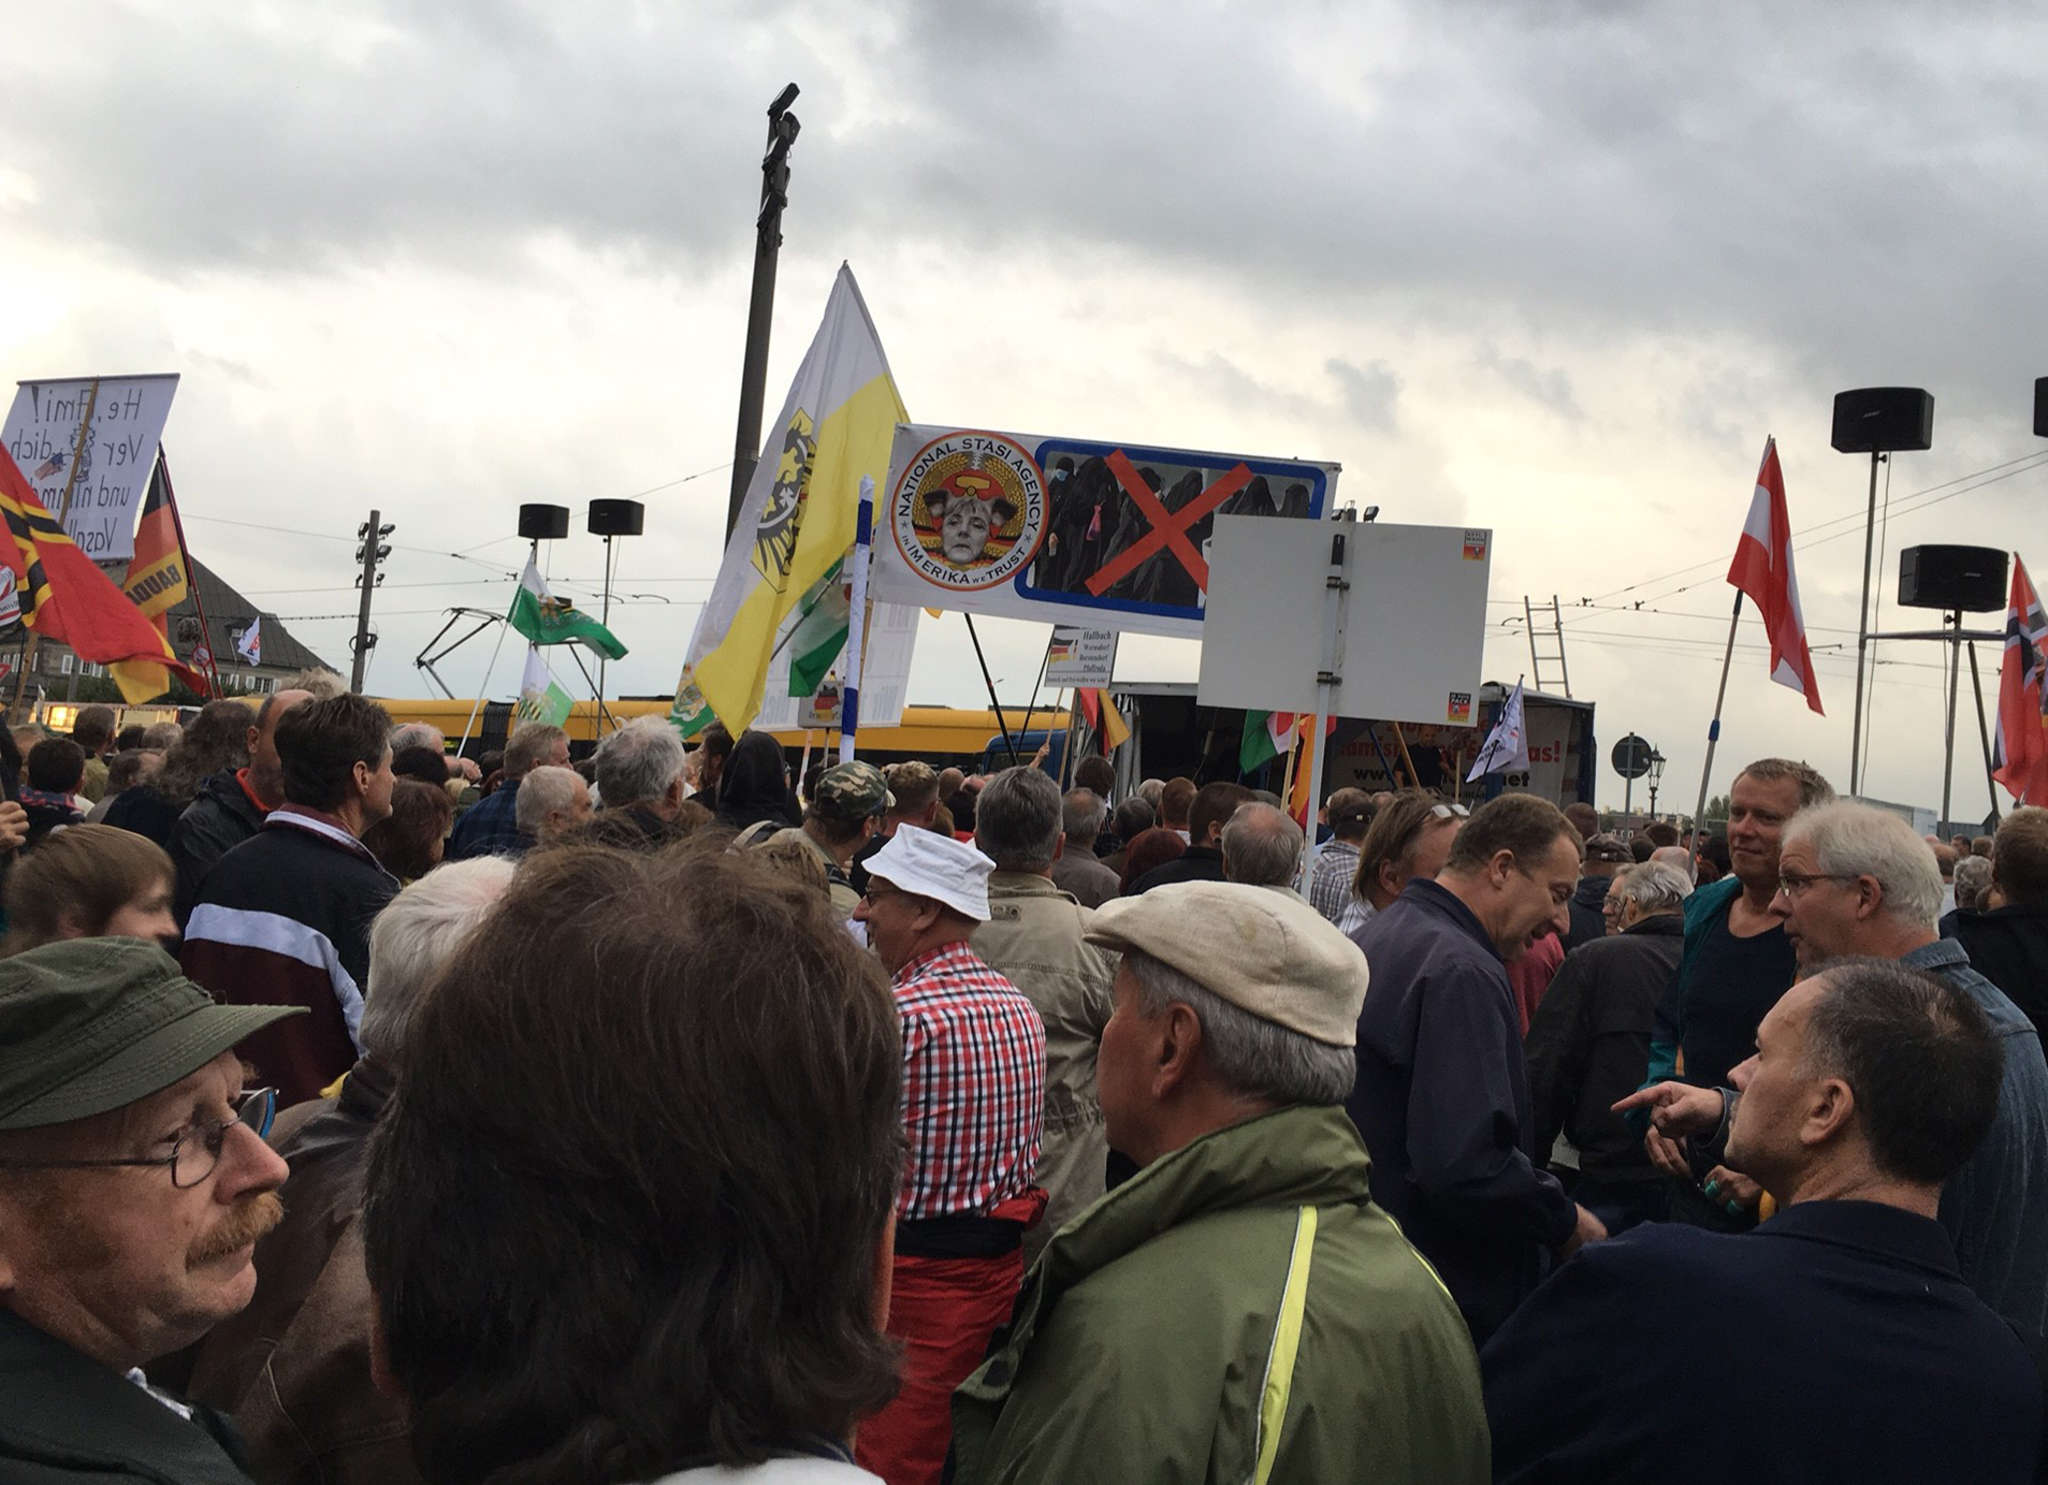 Members of the anti-immigrant group known as Patriotic Europeans Against the Islamization of the West, or Pegida, gather in Dresden to demonstrate.